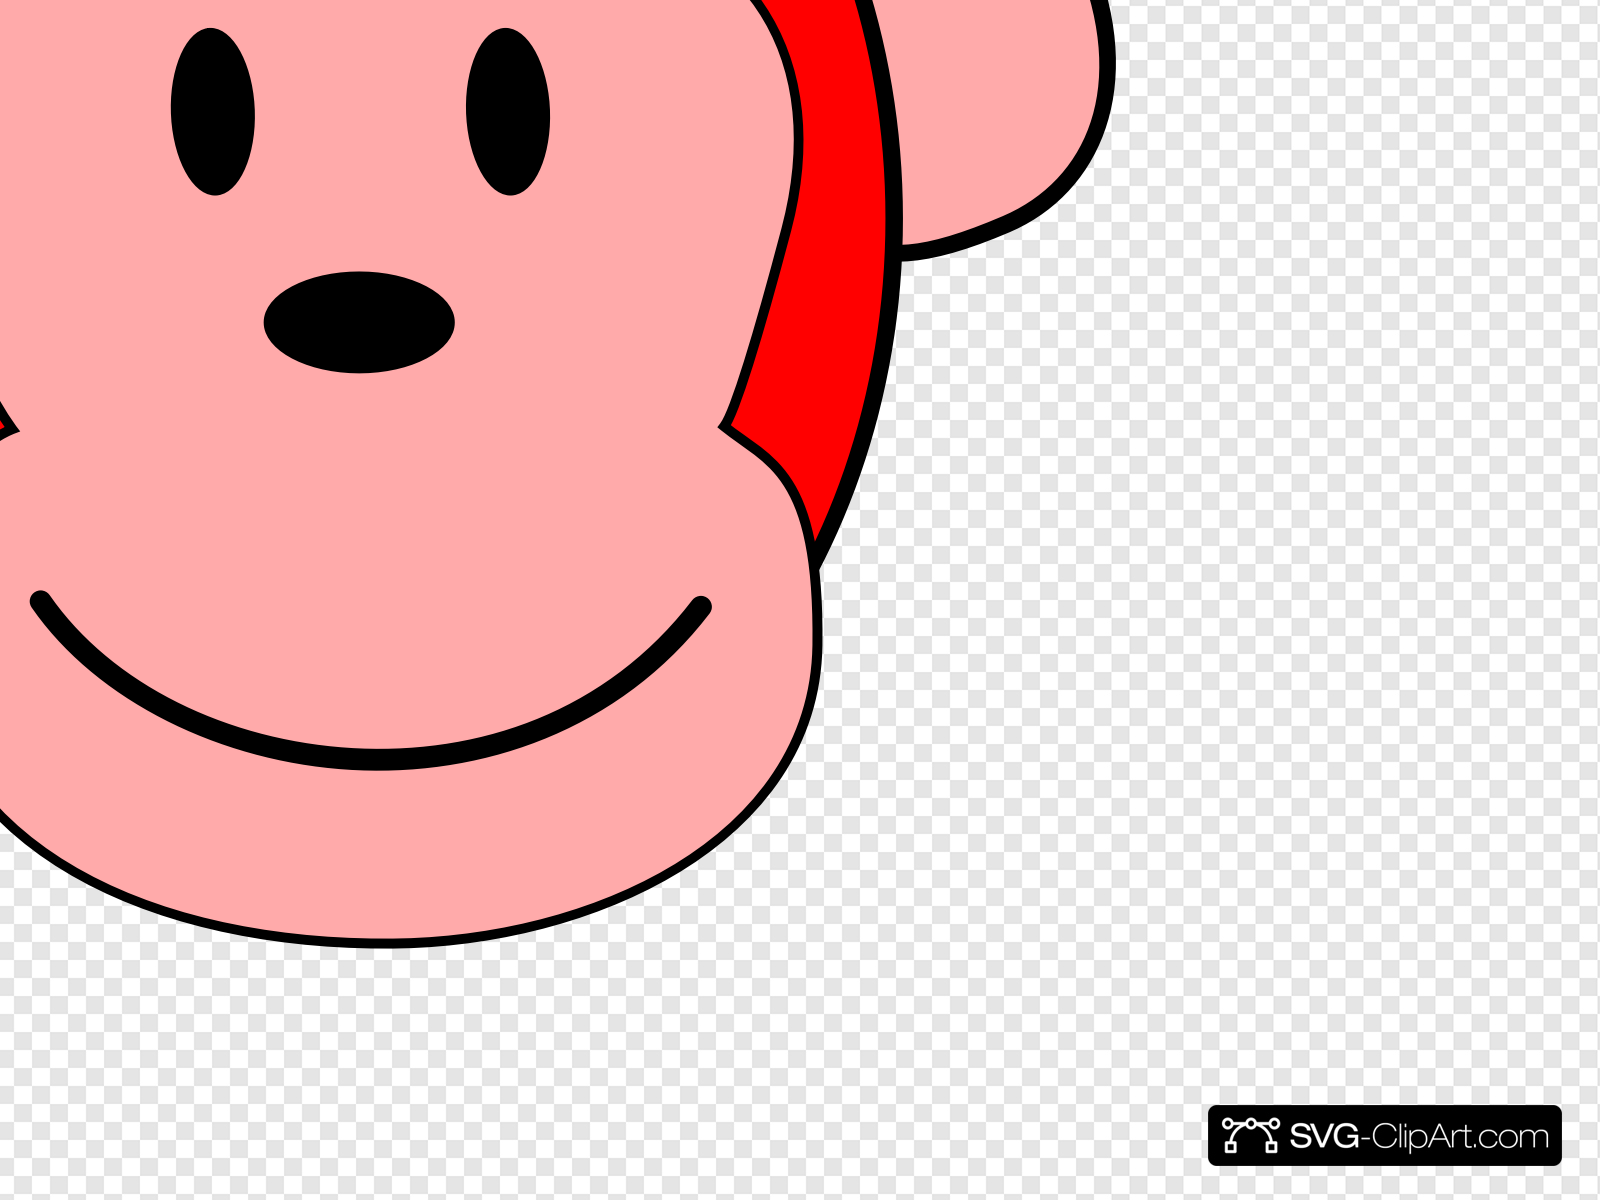 Red Monkey Clip art, Icon and SVG.